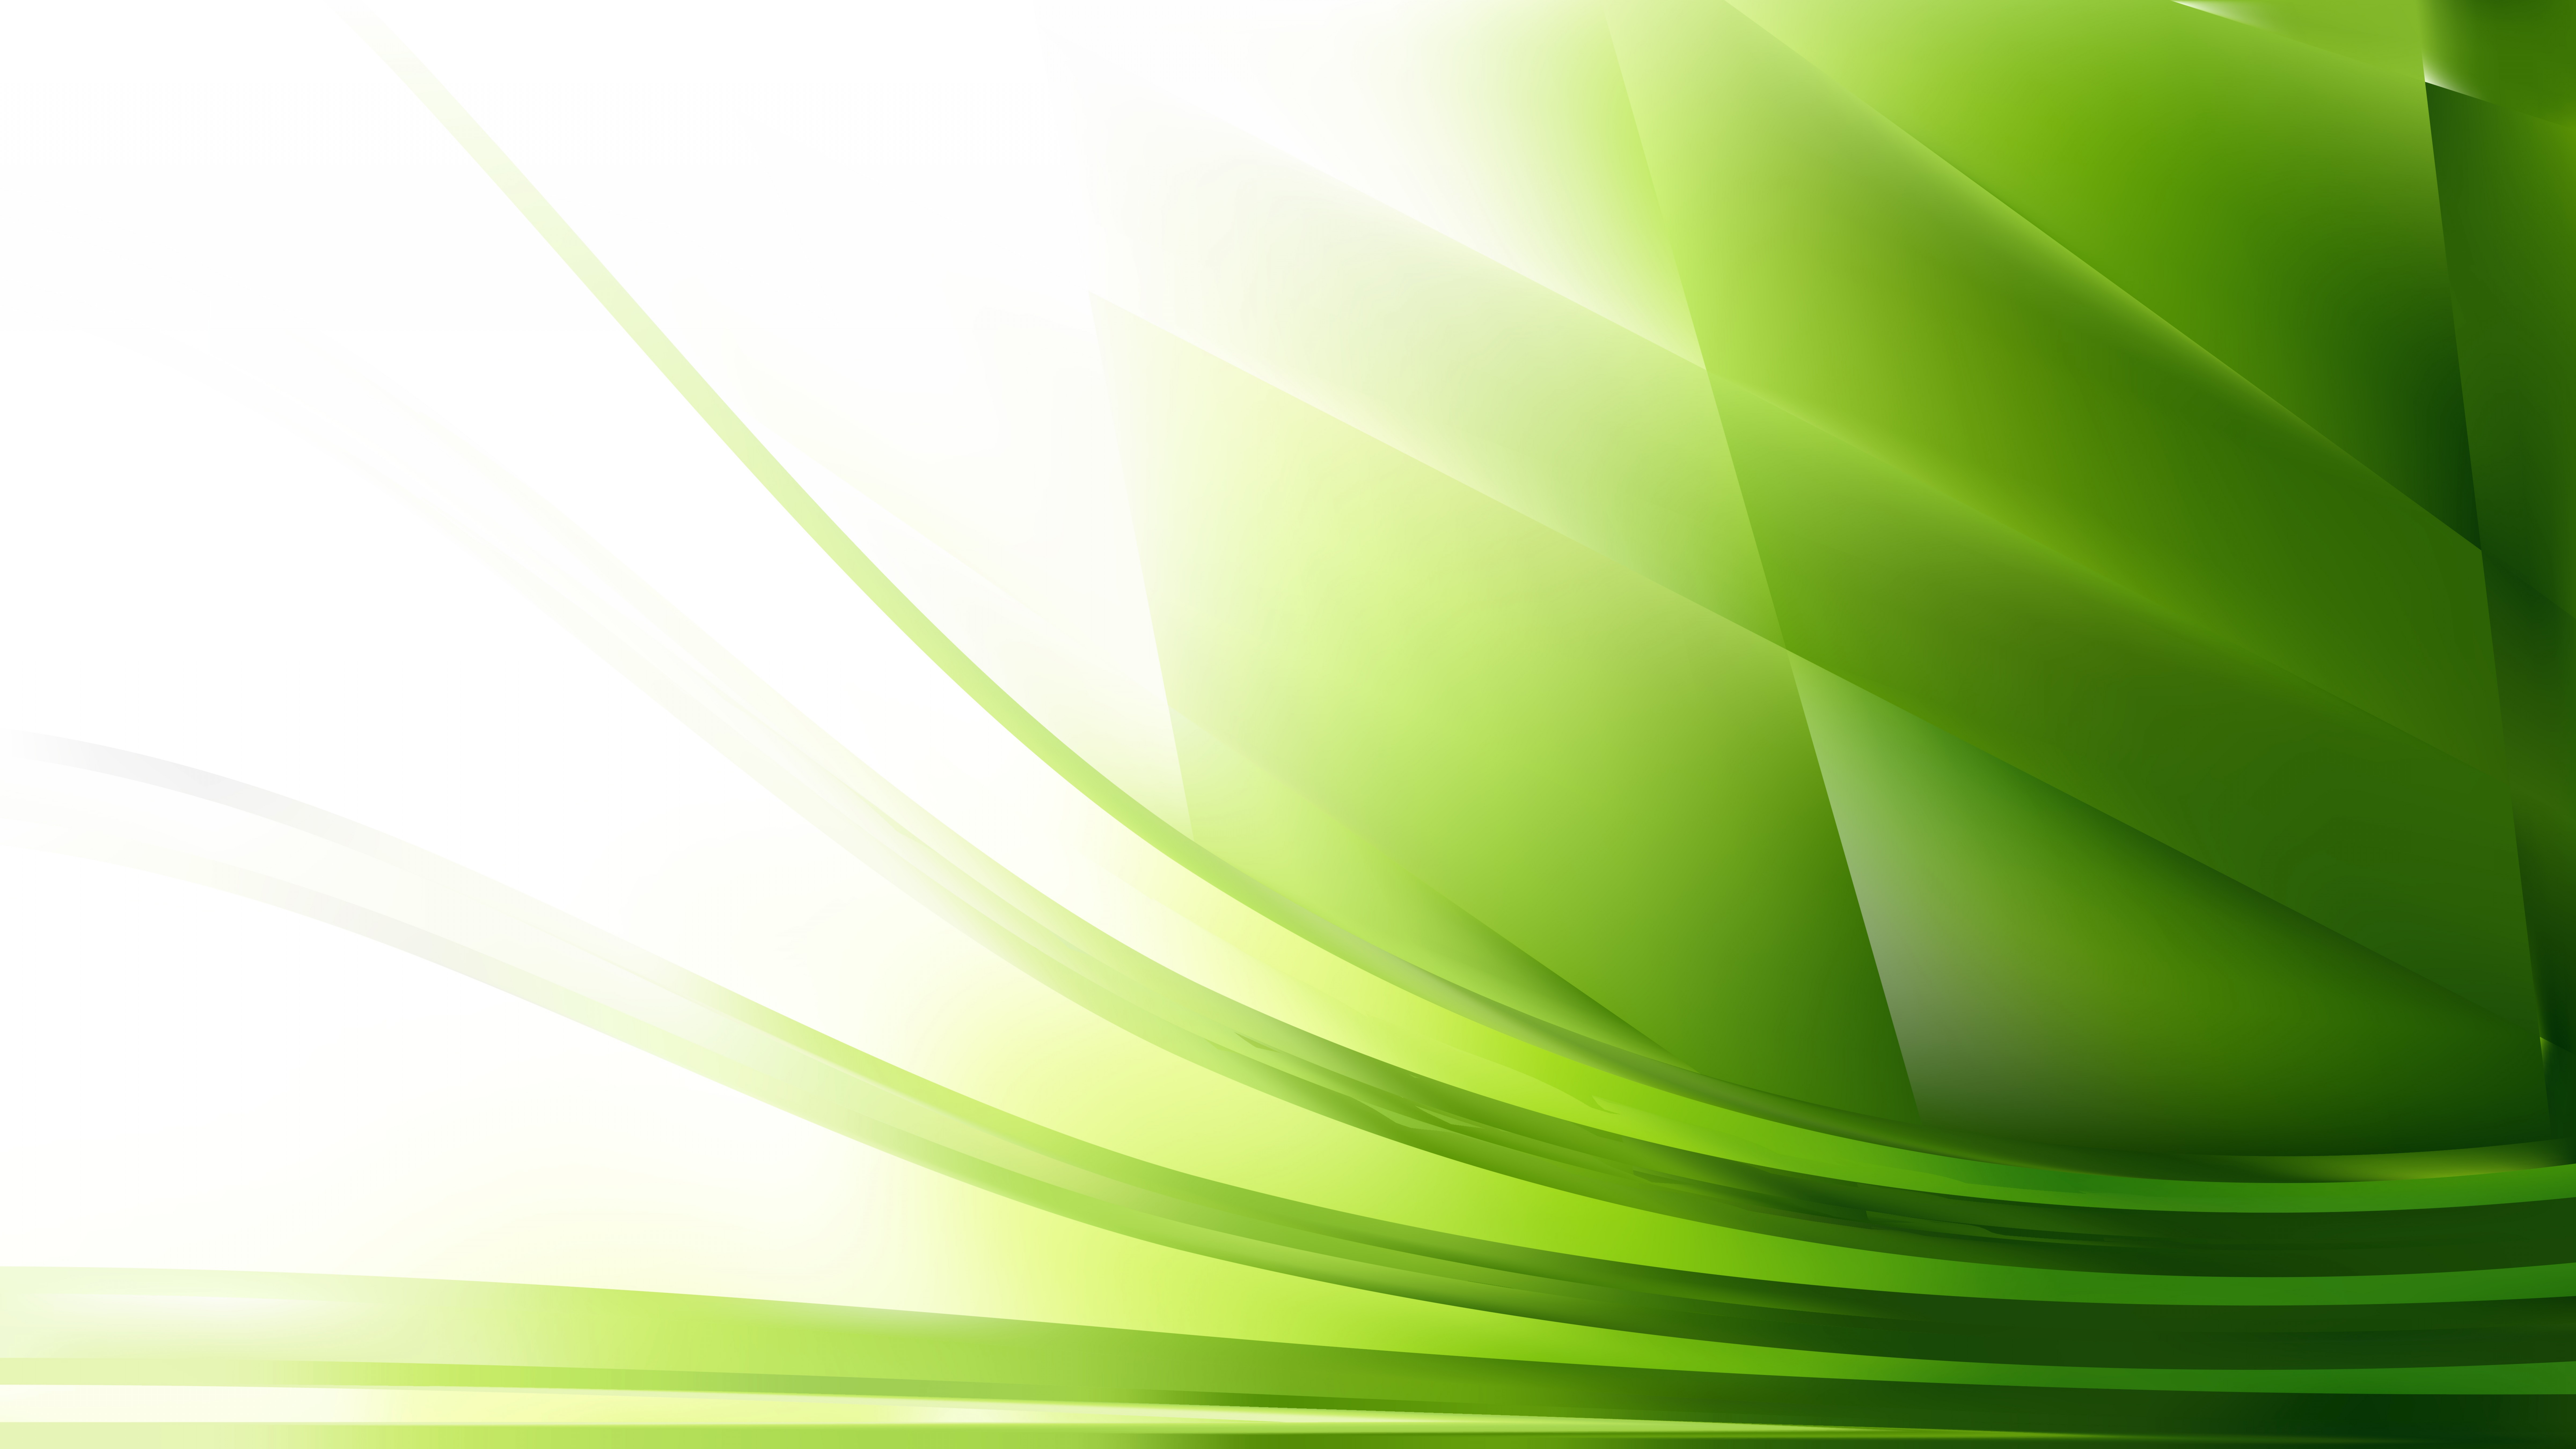 Green And White Vector: Abstract Green And White Background Vector Illustration